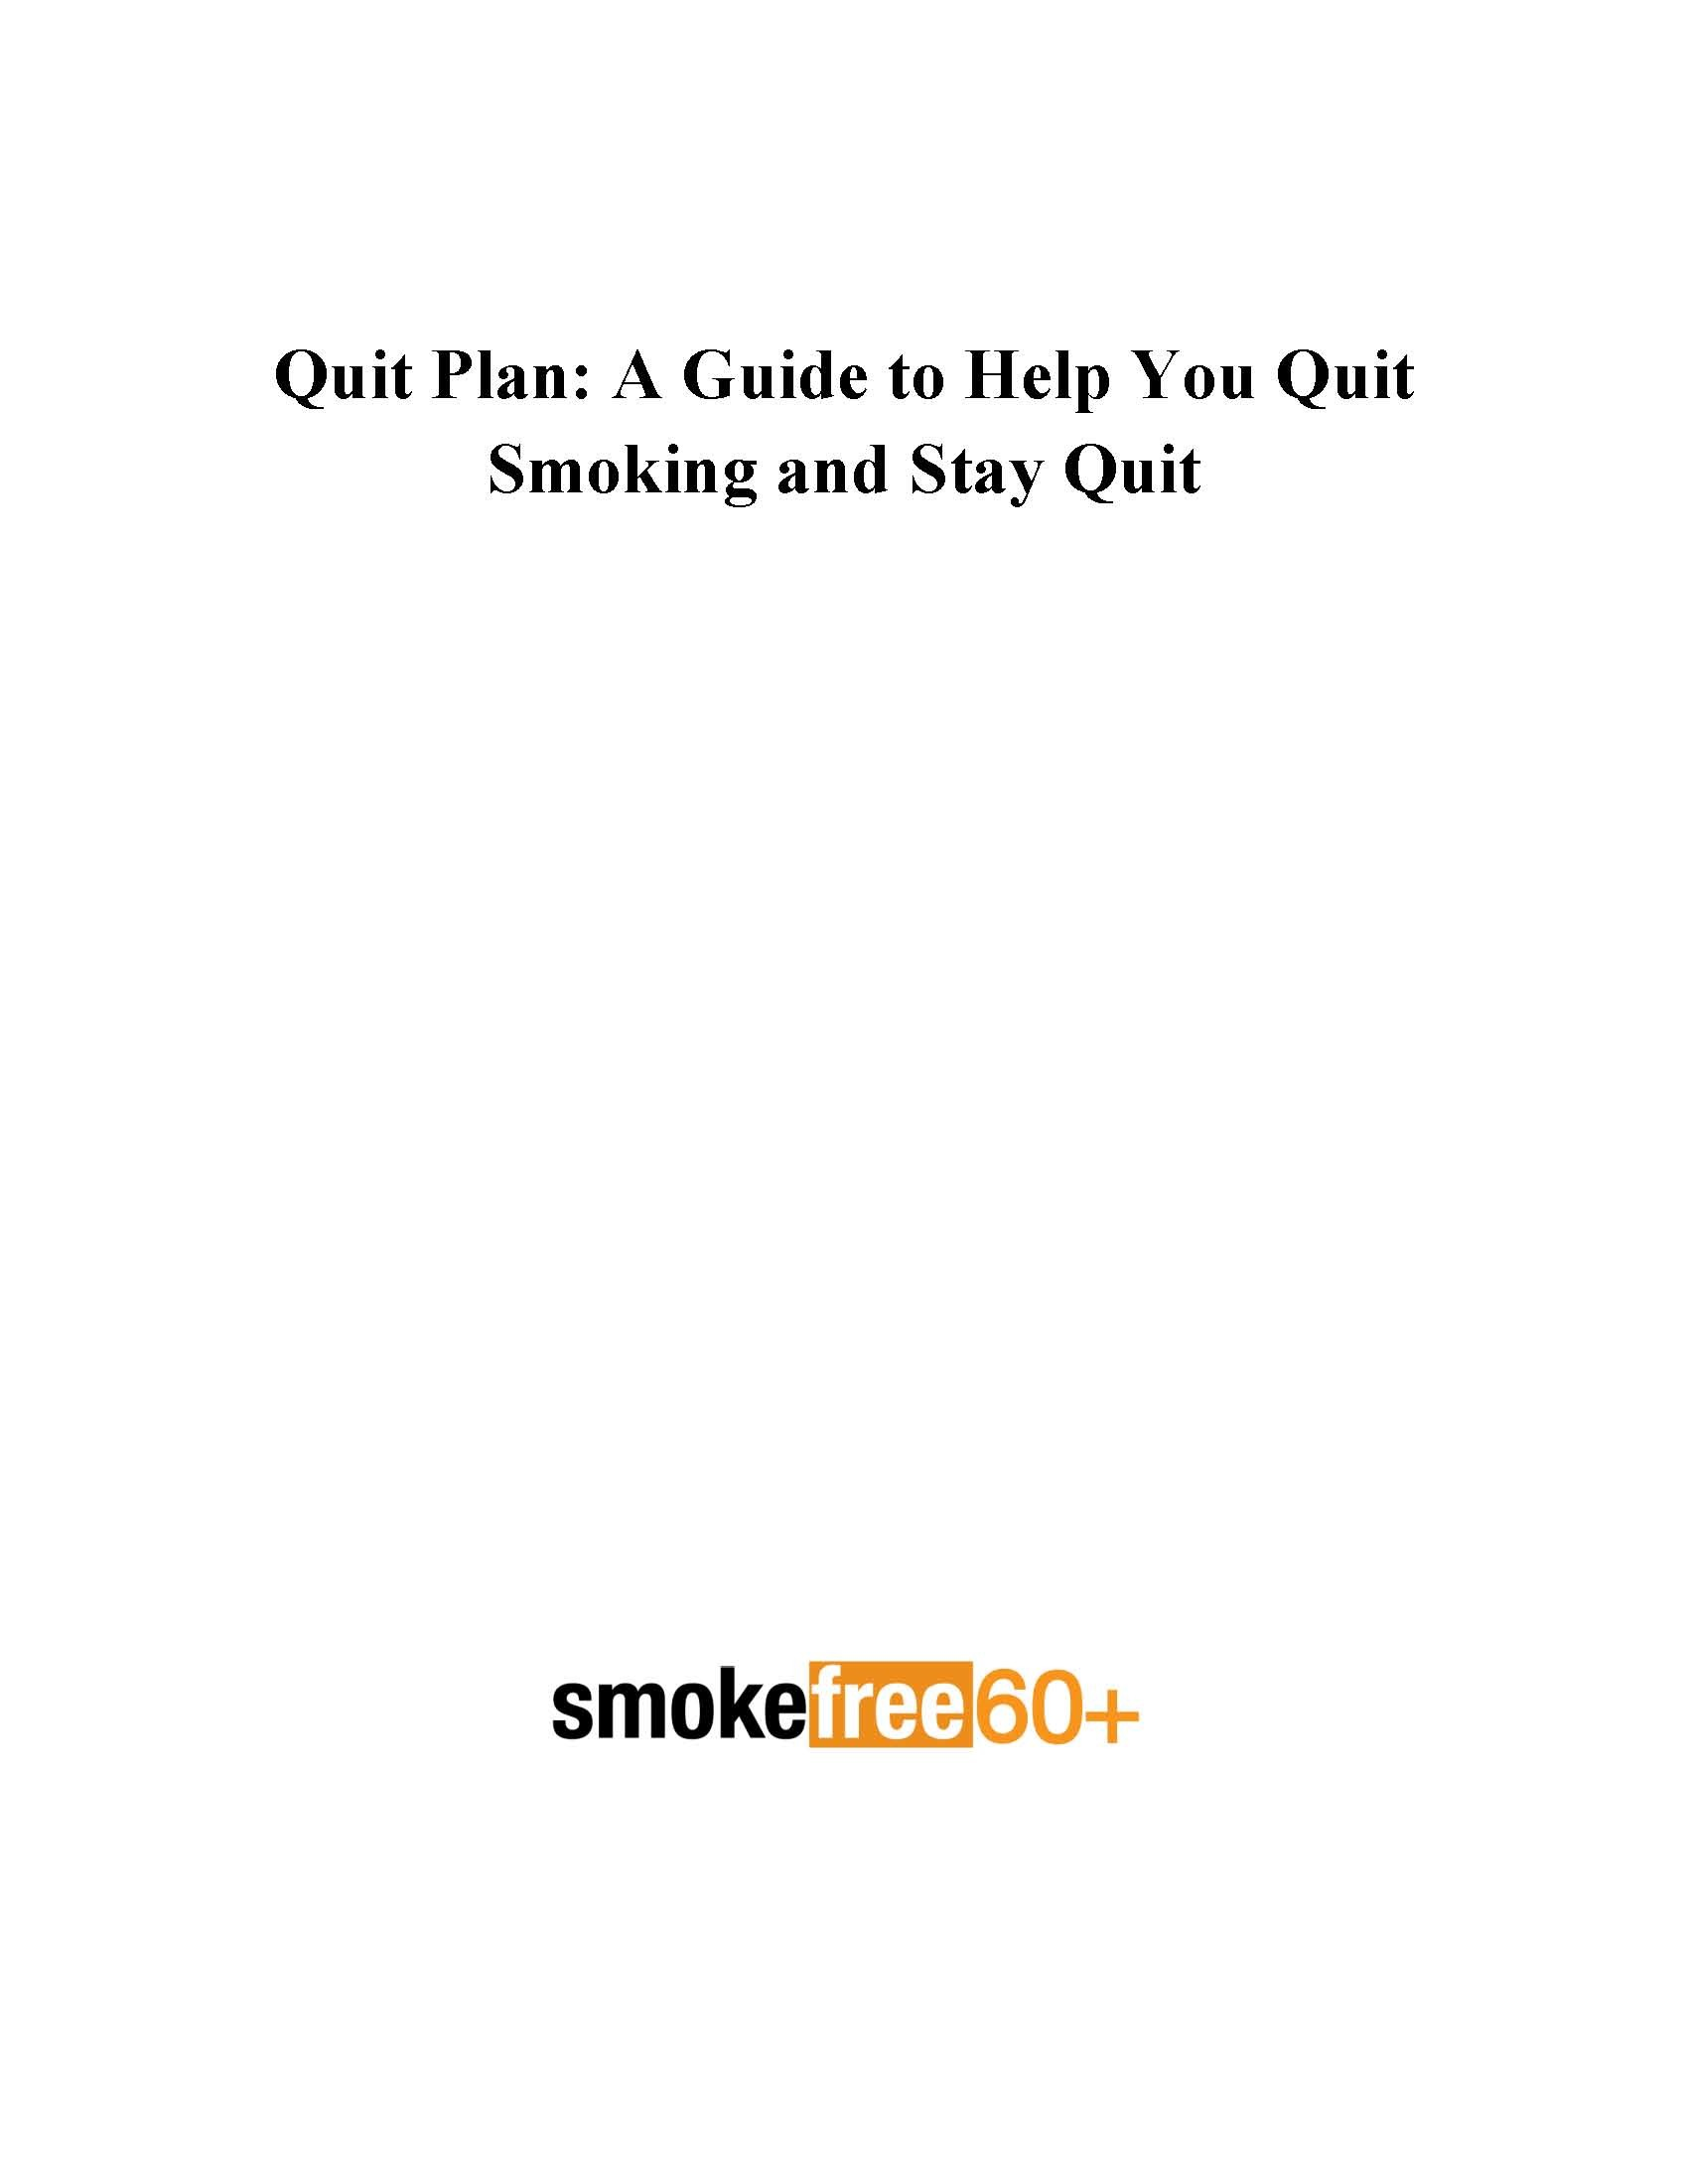 1700x2200 Cover page of Smokefree 60+ quit plan.